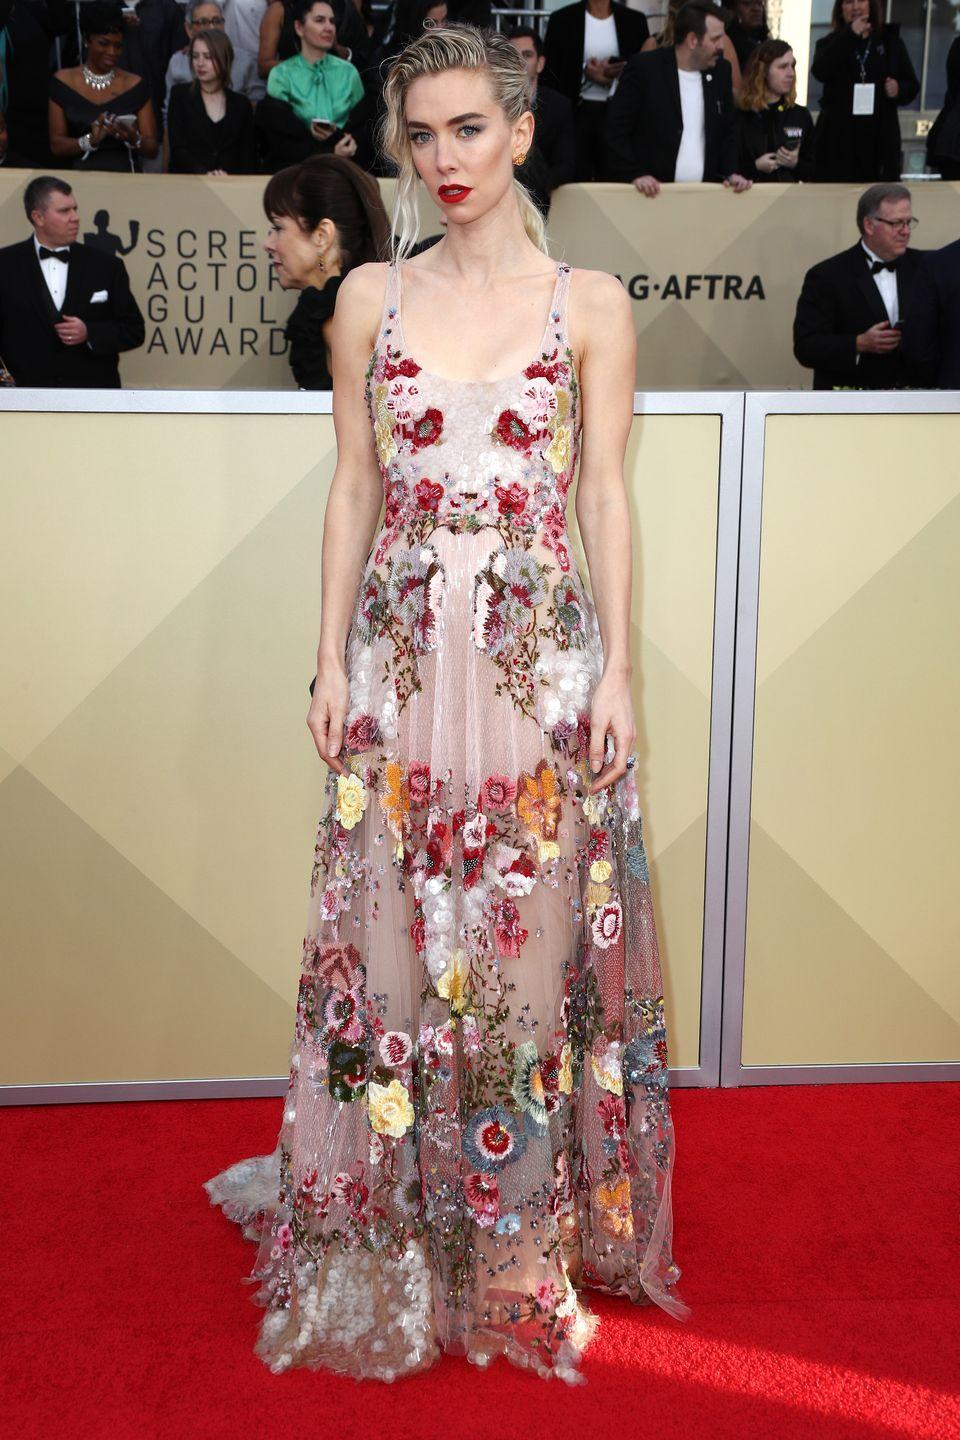 <p>Vanessa paired a nude floral gown with slicked-back hair and a bright red lip on the SAG Awards red carpet. She and the rest of the cast of <em>The Crown </em>is nominated for Outstanding Performance by an Ensemble in a Drama Series tonight.</p>